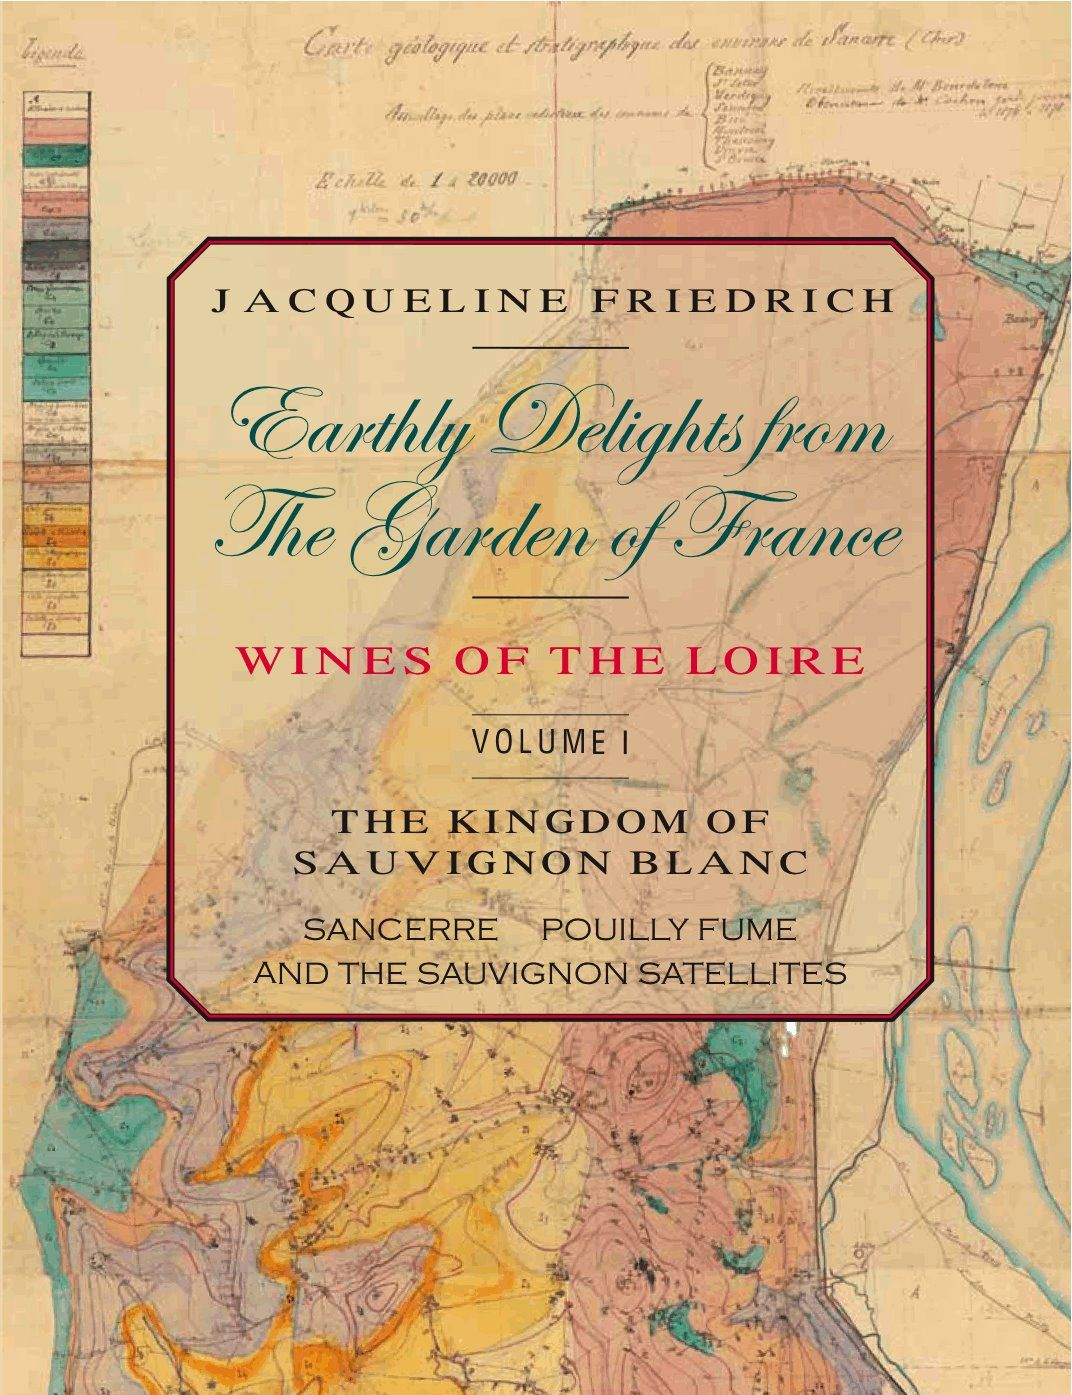 My latest book: Earthly Delights from the Garden of France, Wines of the Loire, Volume One/ The Kingdom of Sauvignon Blanc: Sancerre, Pouilly-Fumé, and the Sauvignon Satellites. You can order it directly from lulu.com or buy from Amazon. Check out reviews on its Facebook page.